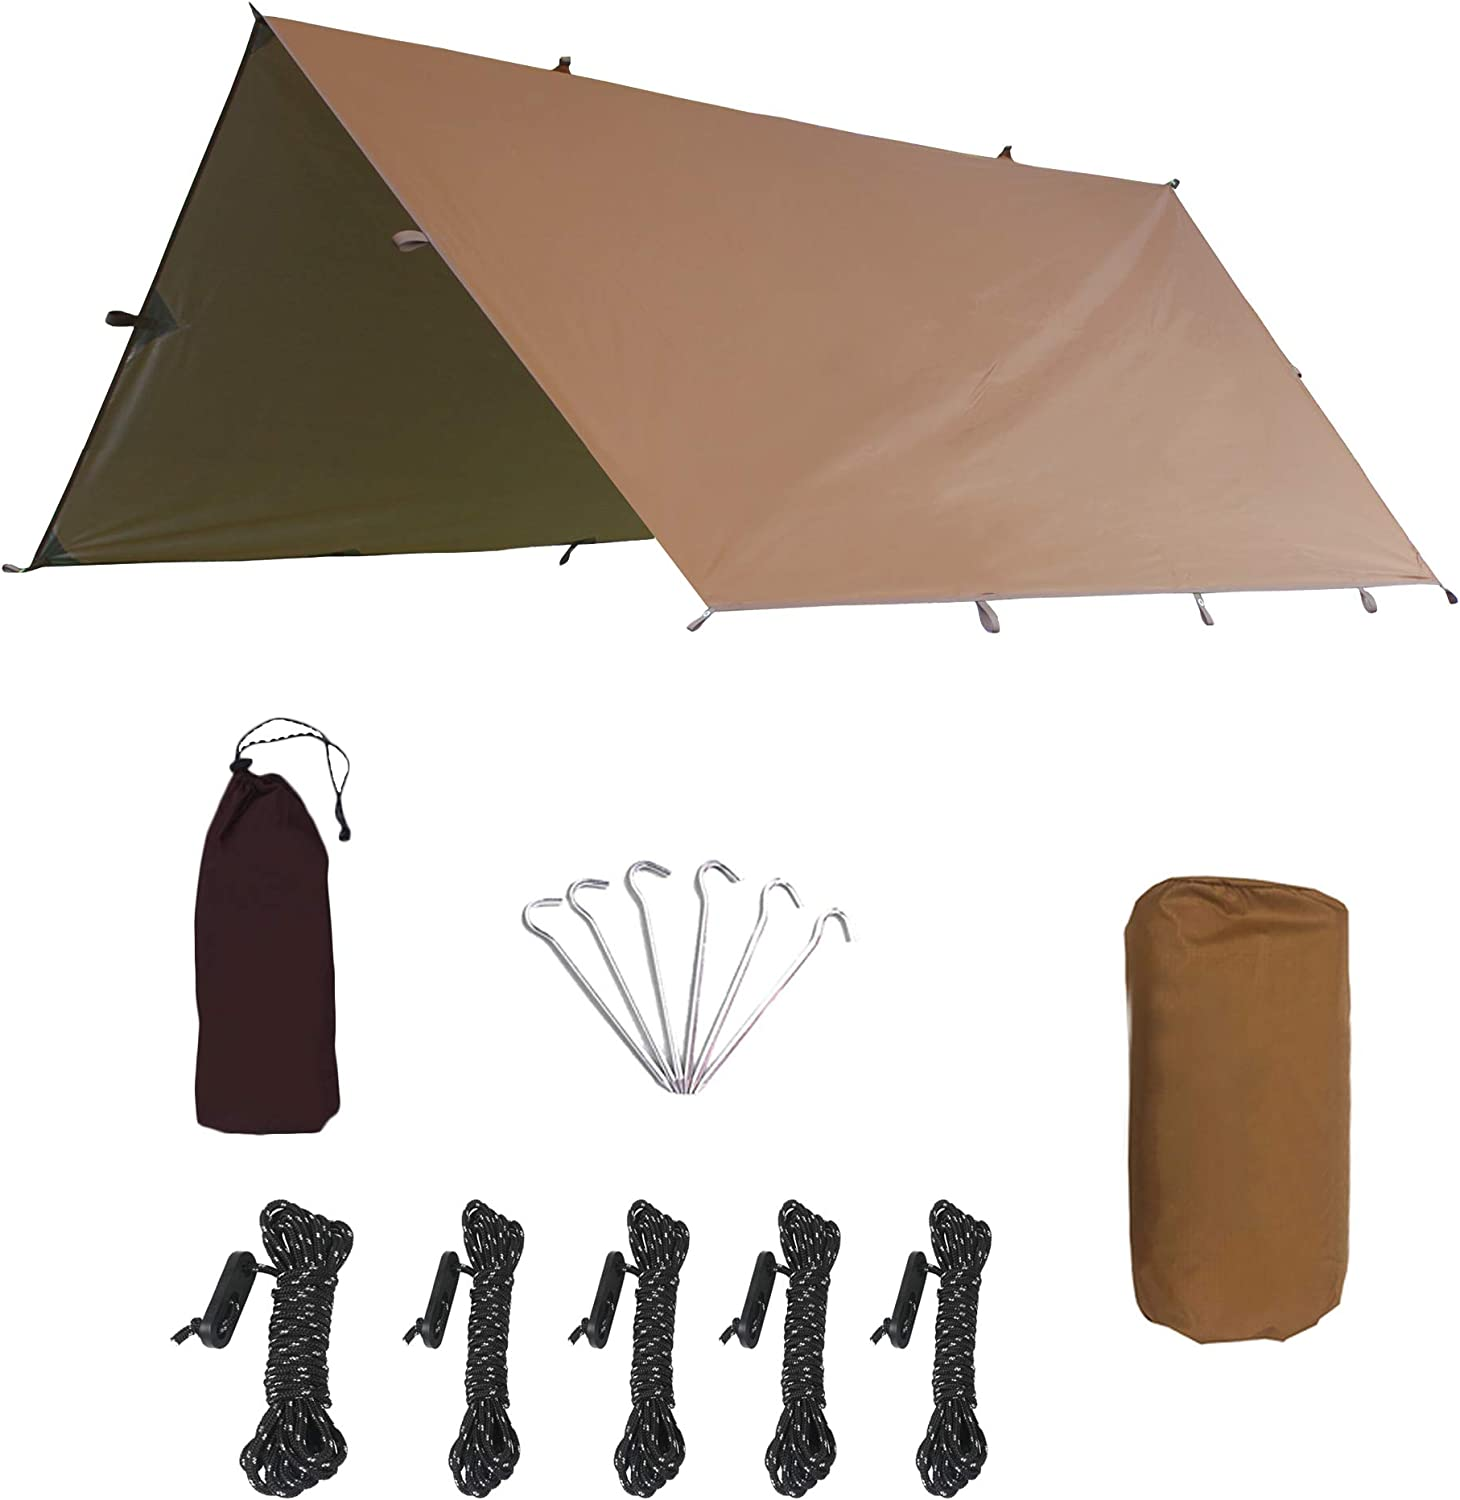 Camping Tent Tarp Shelter 3m x 3.2m//4m x 4m//4.5m x 5.5m Lightweight Waterproof Windproof PU3000mm Anti UV with 6 Aluminium Stakes 5 Ropes and Carrying Bag for Snow Sunshade for Camping Outdoor Travel